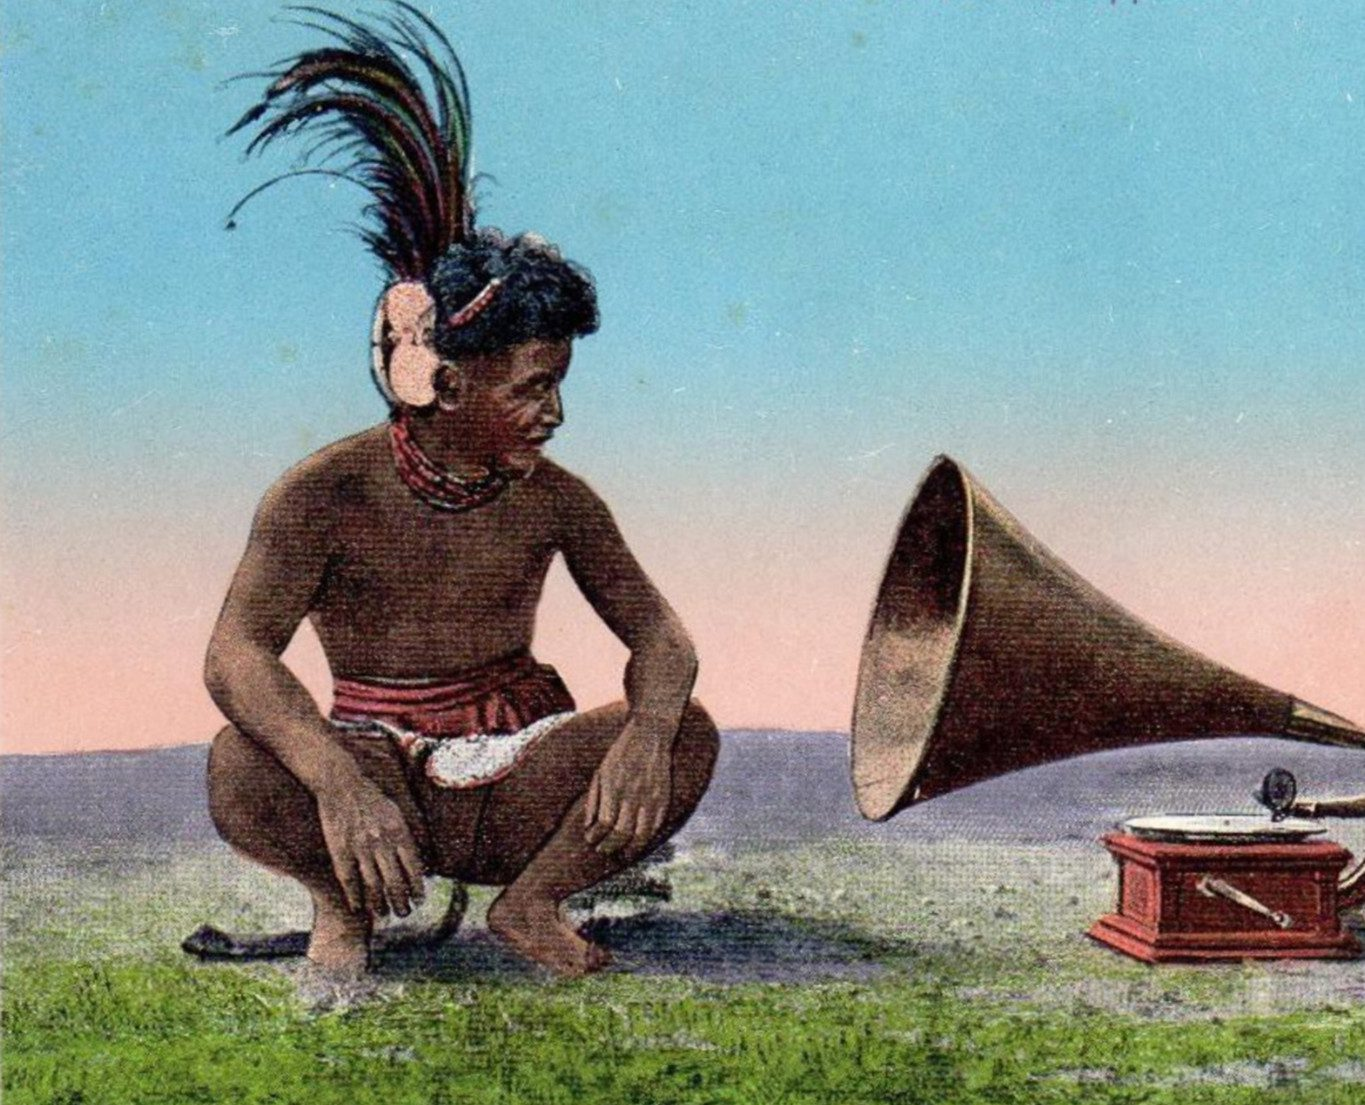 Postcard with a Subuagane listening to a phonograph (Mt Province, Philippines c. 1915)